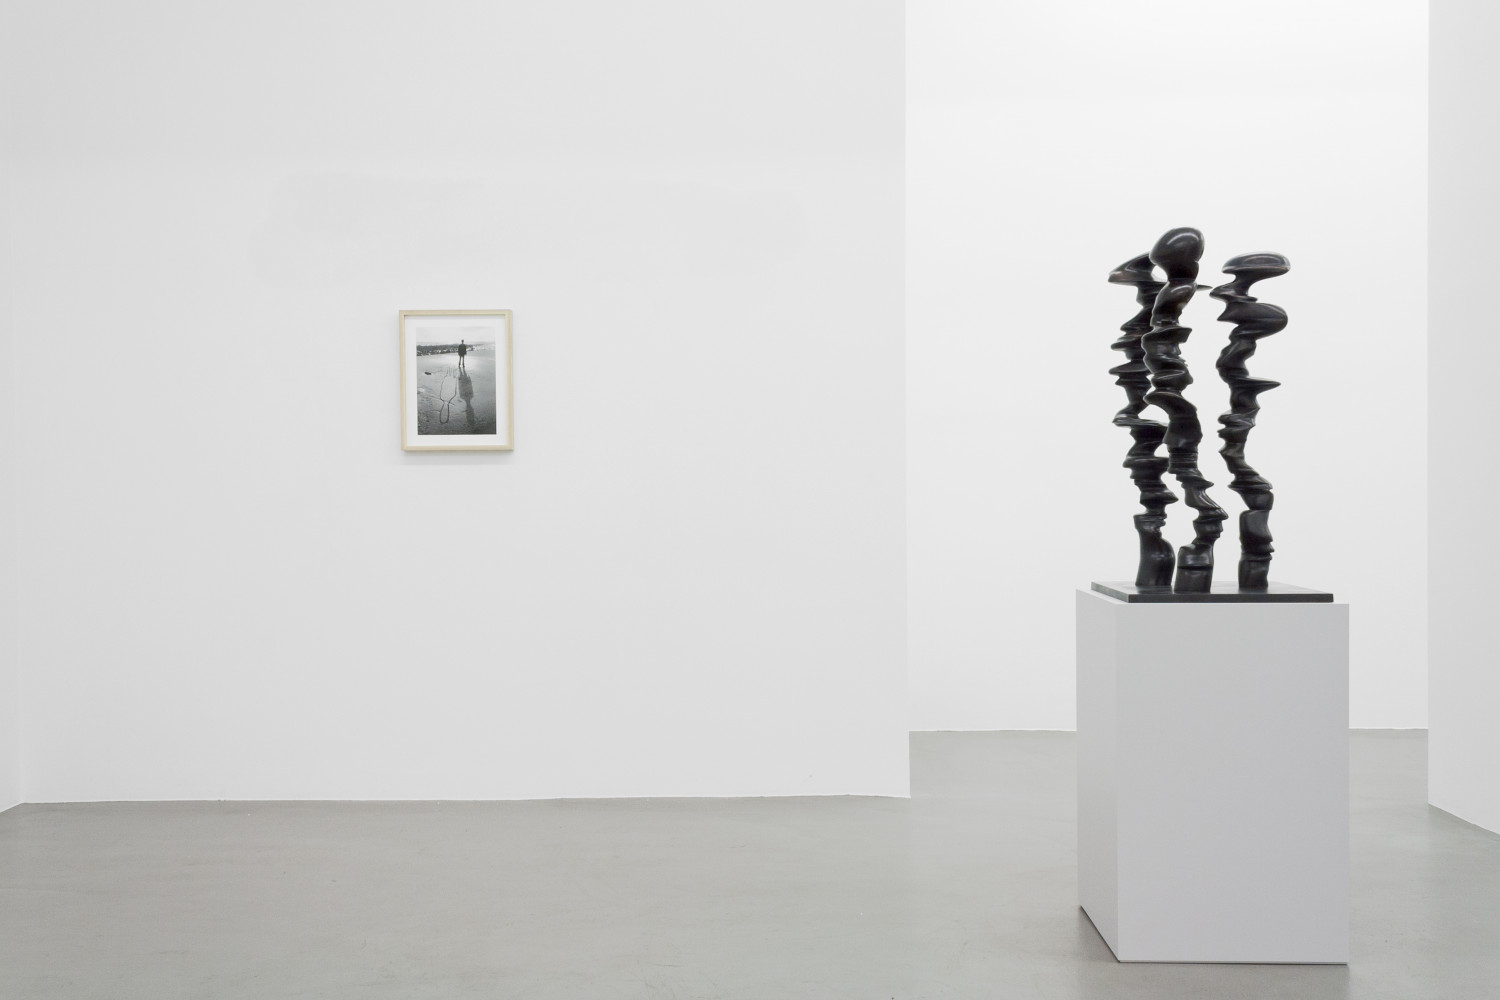 Tony Cragg, 'Figure – Tony Cragg - Martin Disler - Medardo Rosso - William Tucker - Rebecca Warren', Installation view, Buchmann Galerie